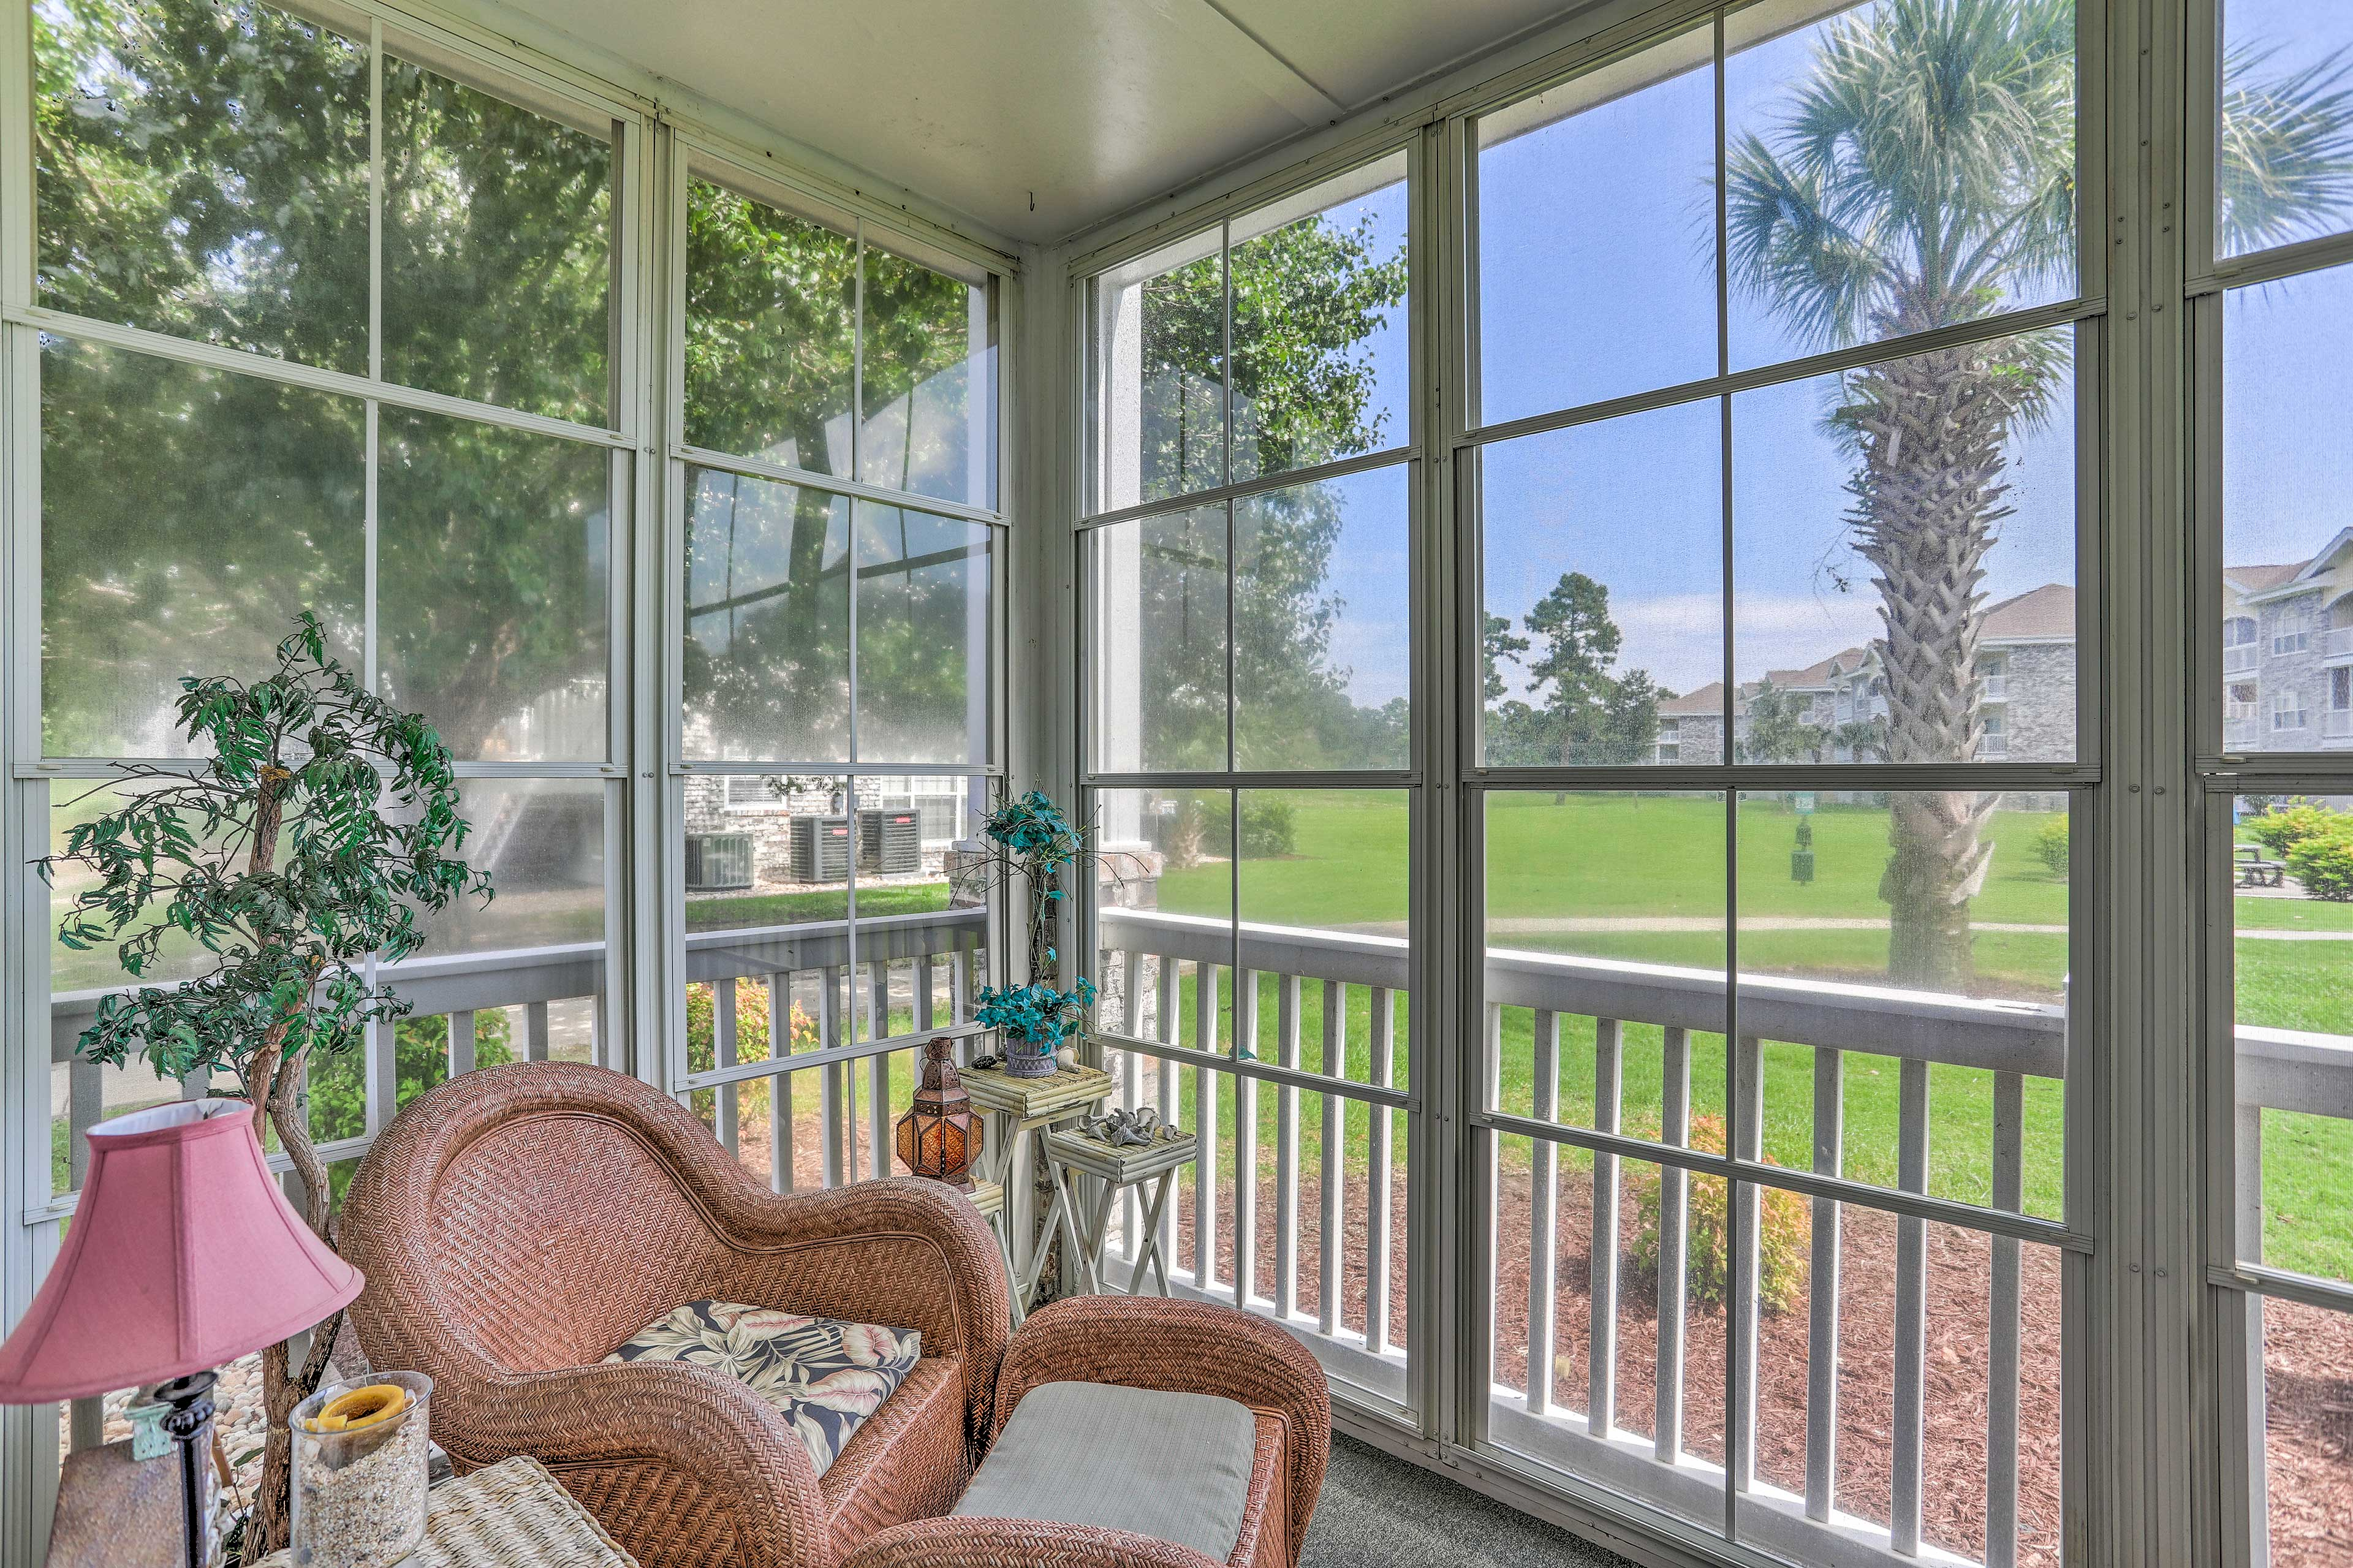 The screened-in porch is comfortably furnished.